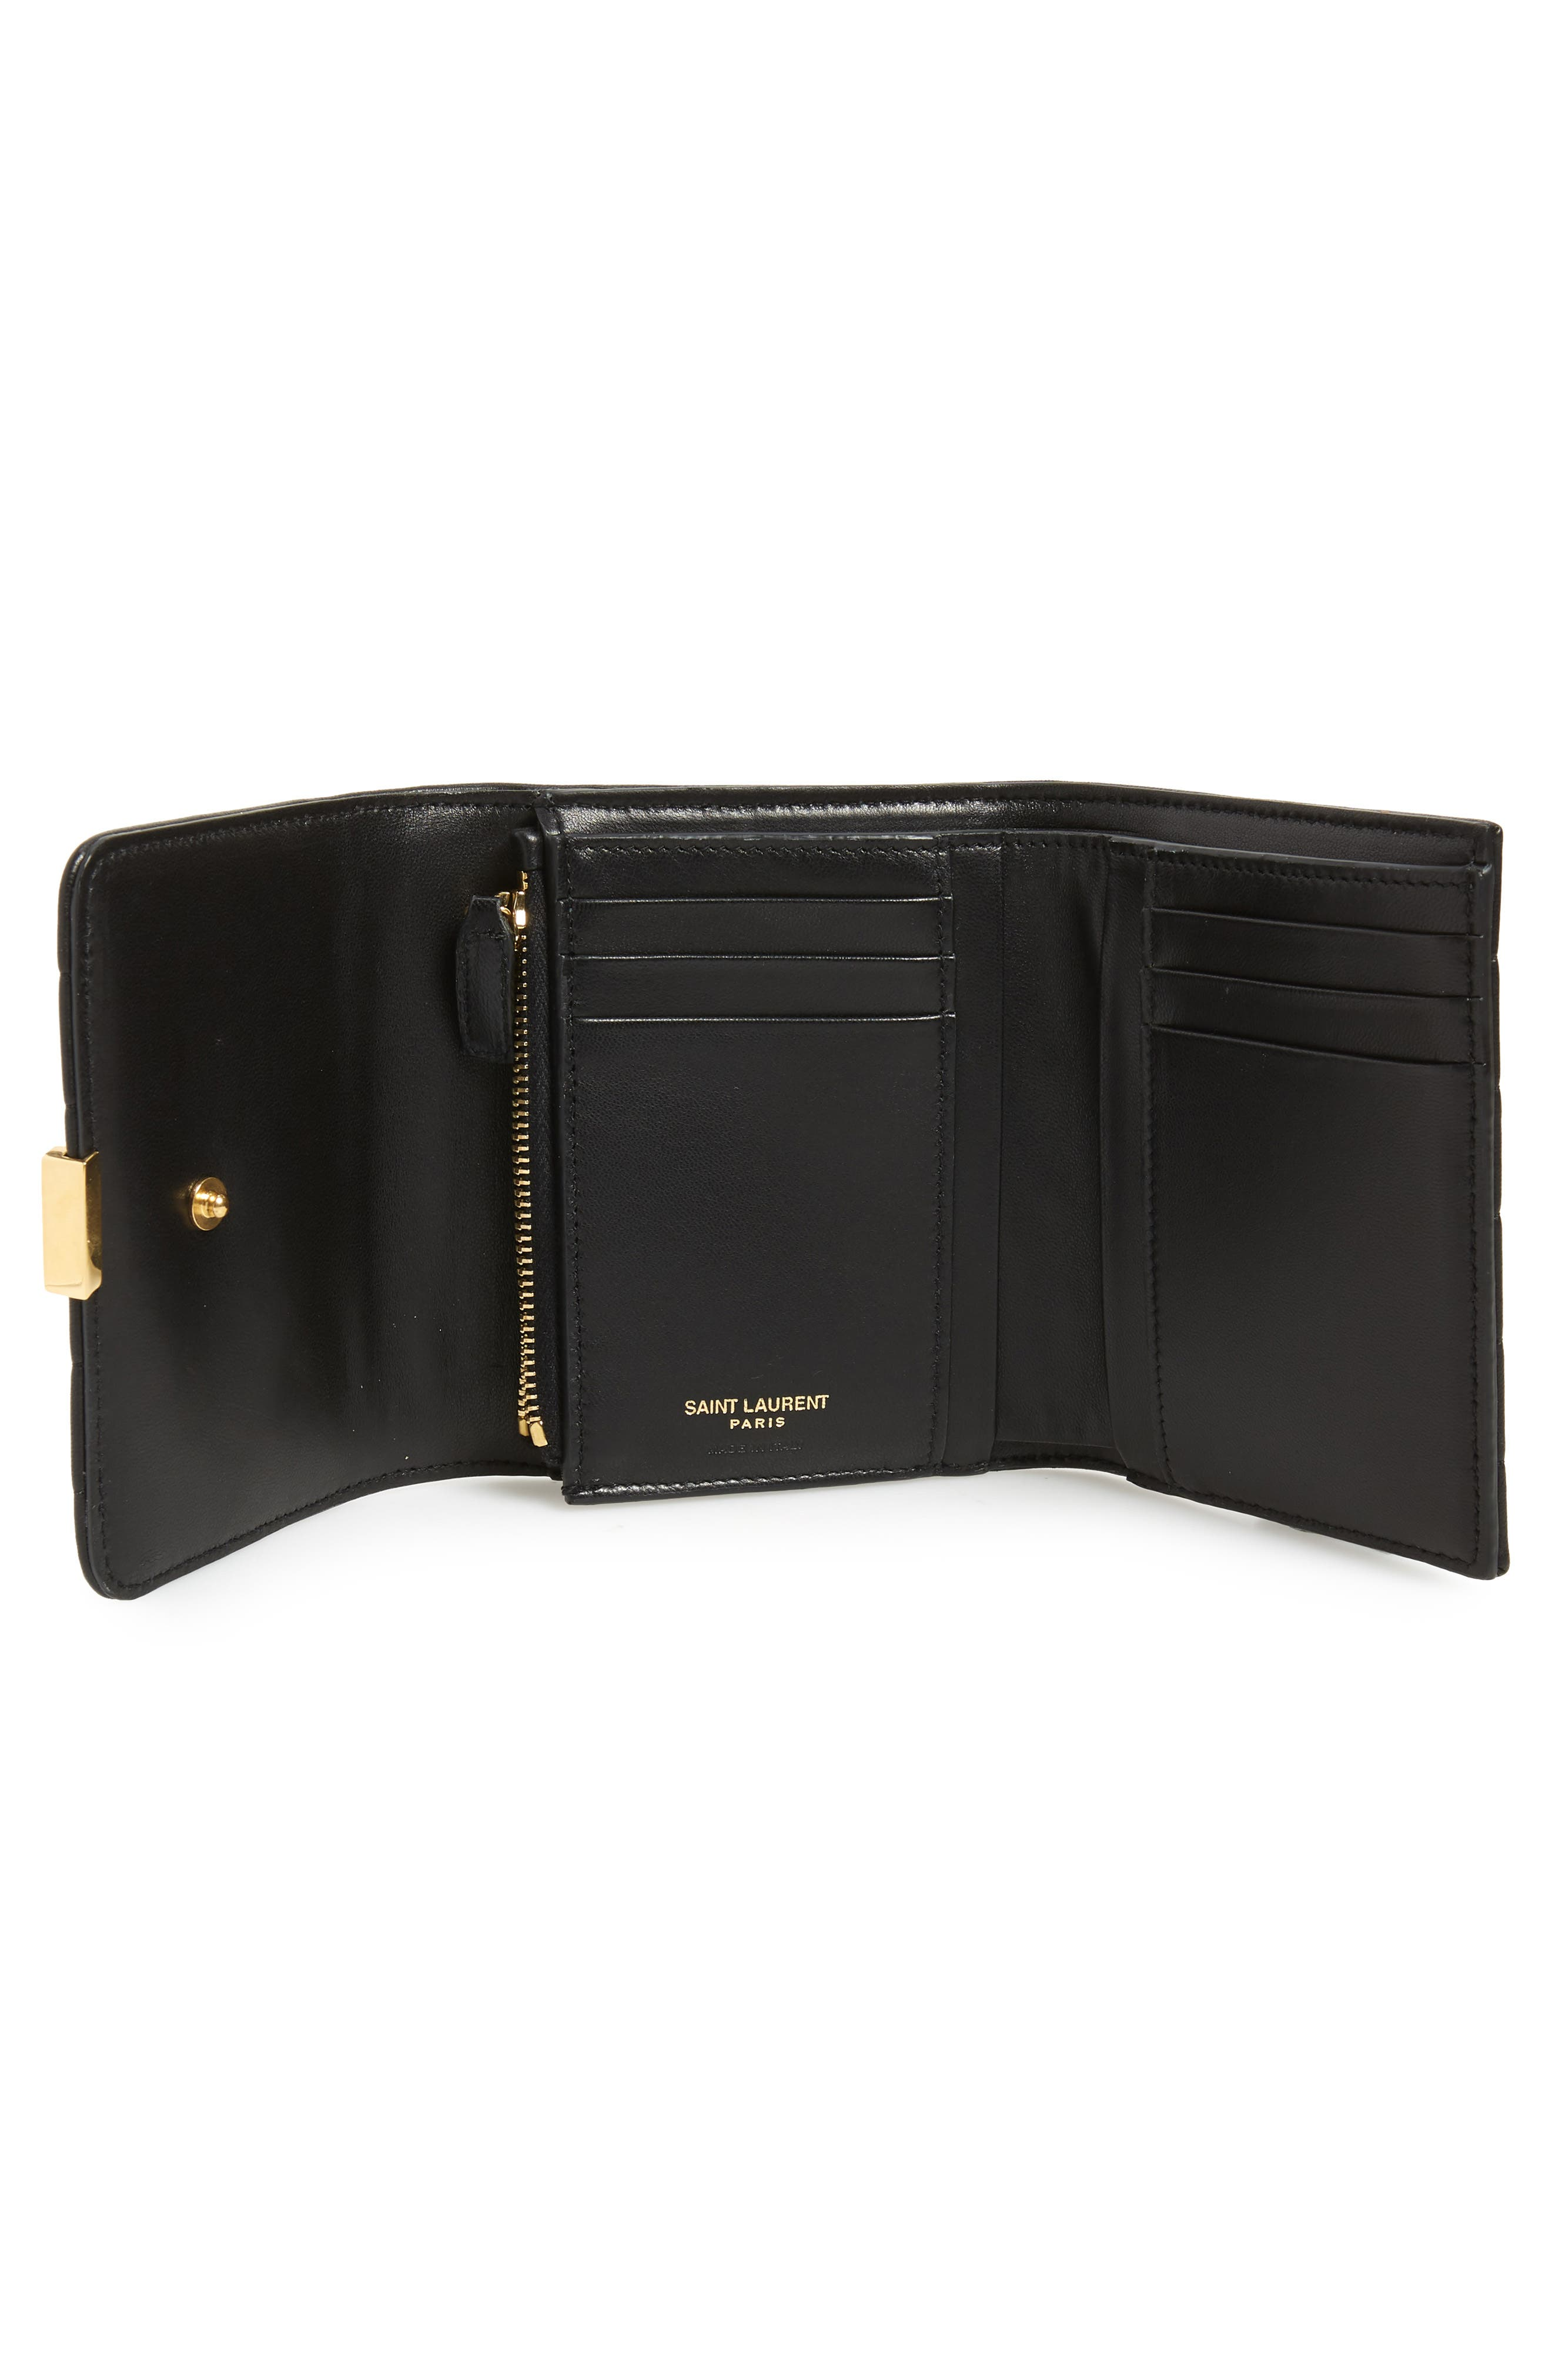 Vicky Lambskin Leather Trifold Wallet,                             Alternate thumbnail 2, color,                             NOIR